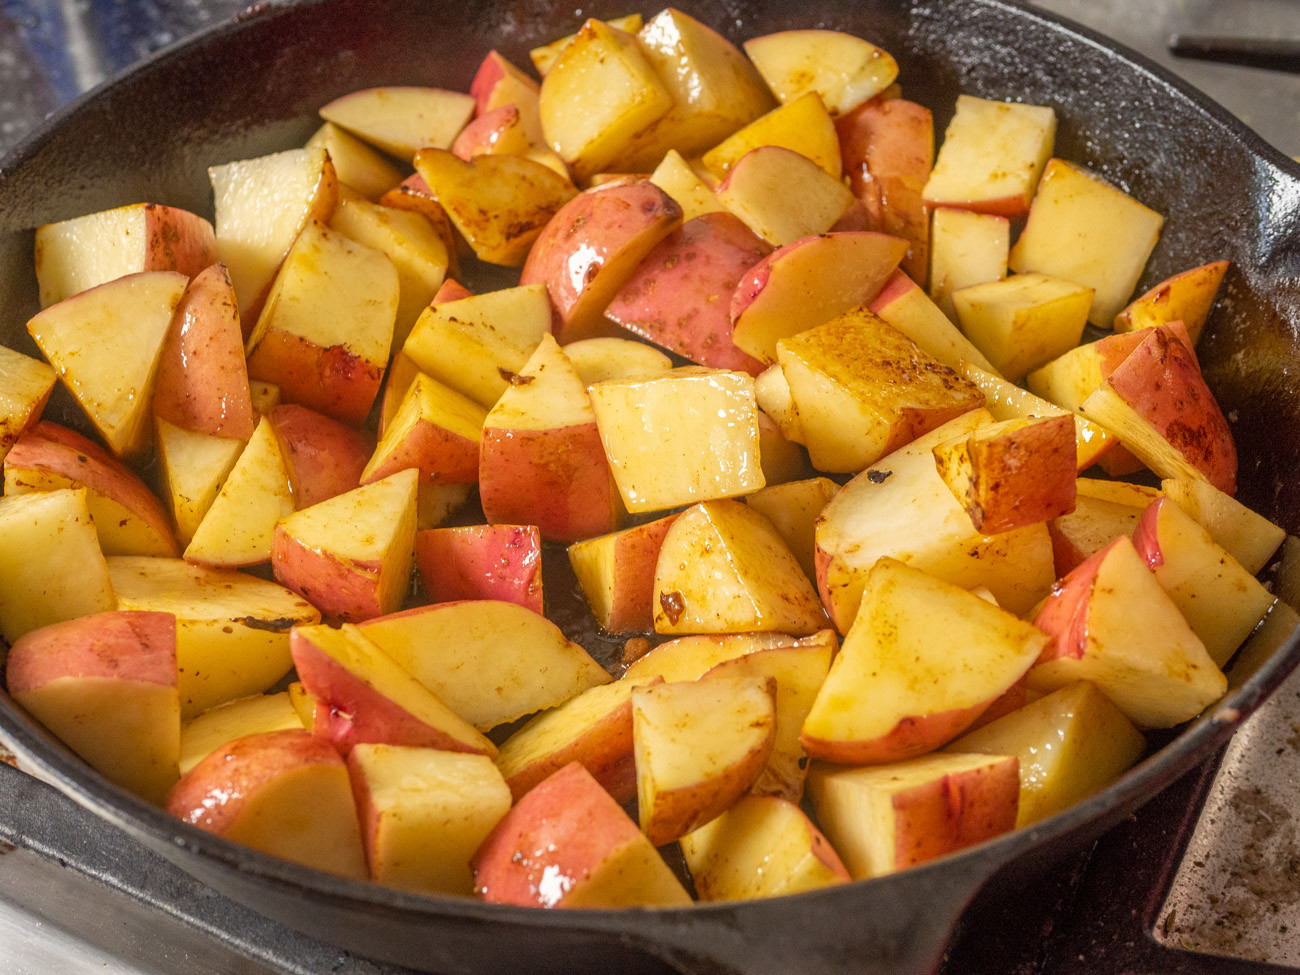 In the same skillet add 1 tablespoon olive oil and cook the potatoes for about 10 minutes. Add potatoes to casserole dish.